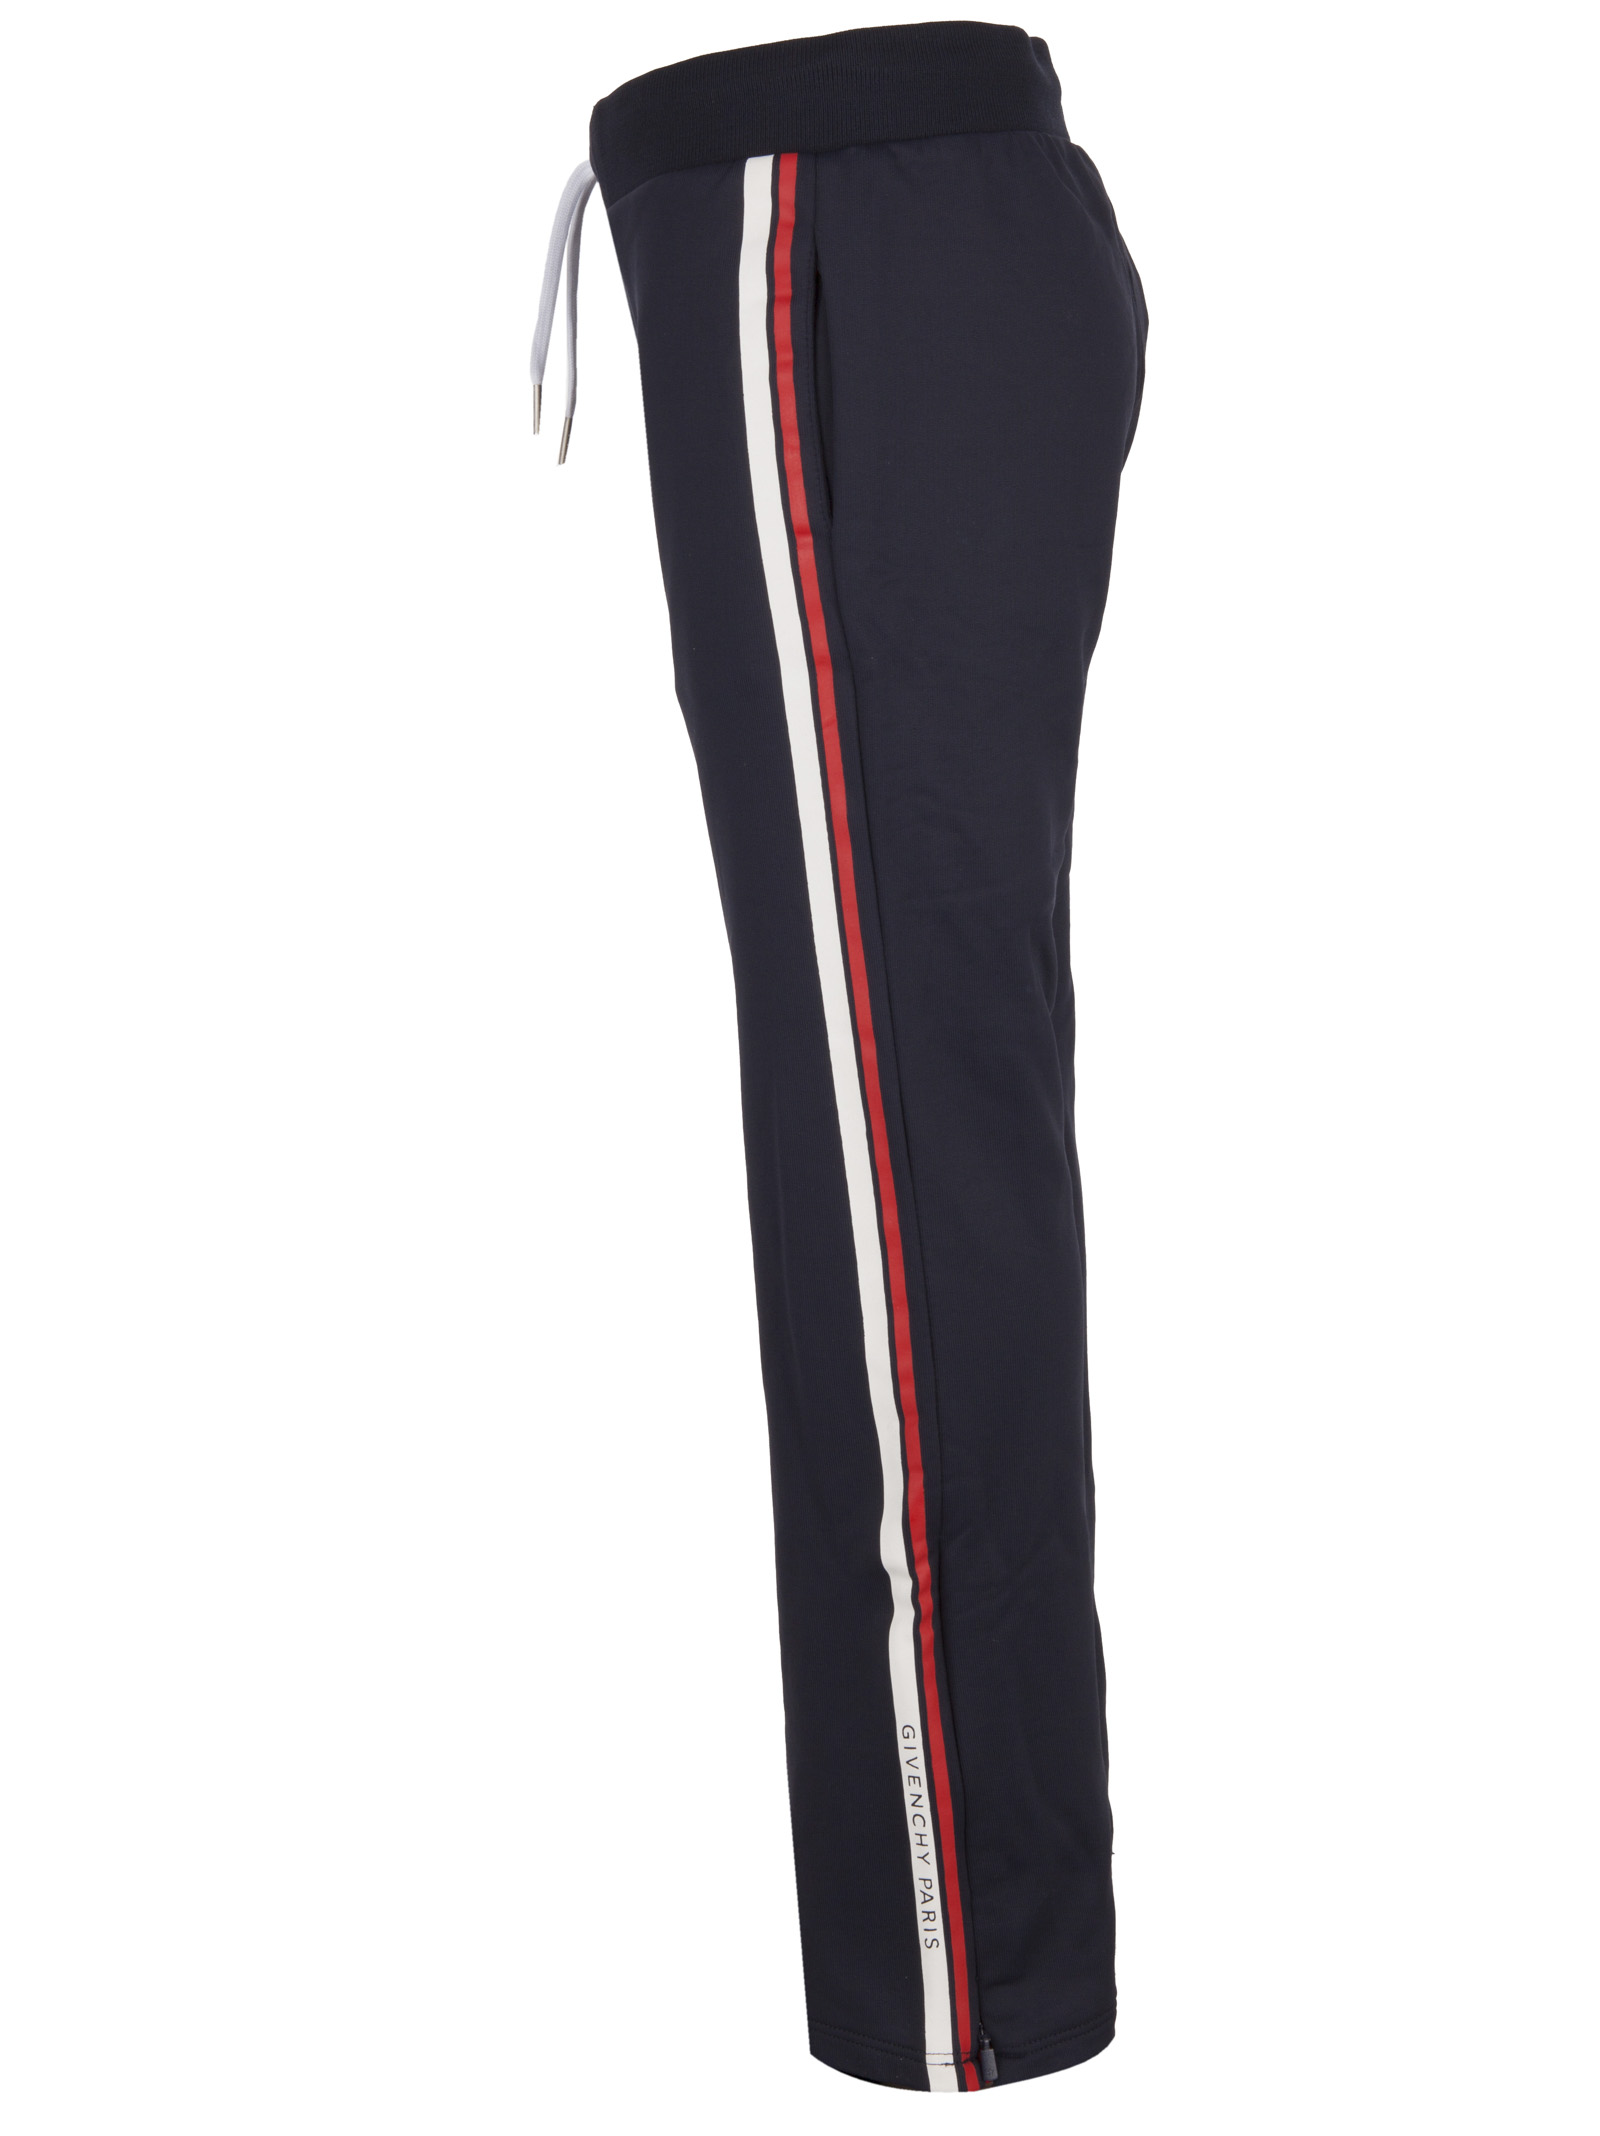 92f6758965c5 Michele Franzese Moda. 0. Givenchy Kids trousers GIVENCHY kids